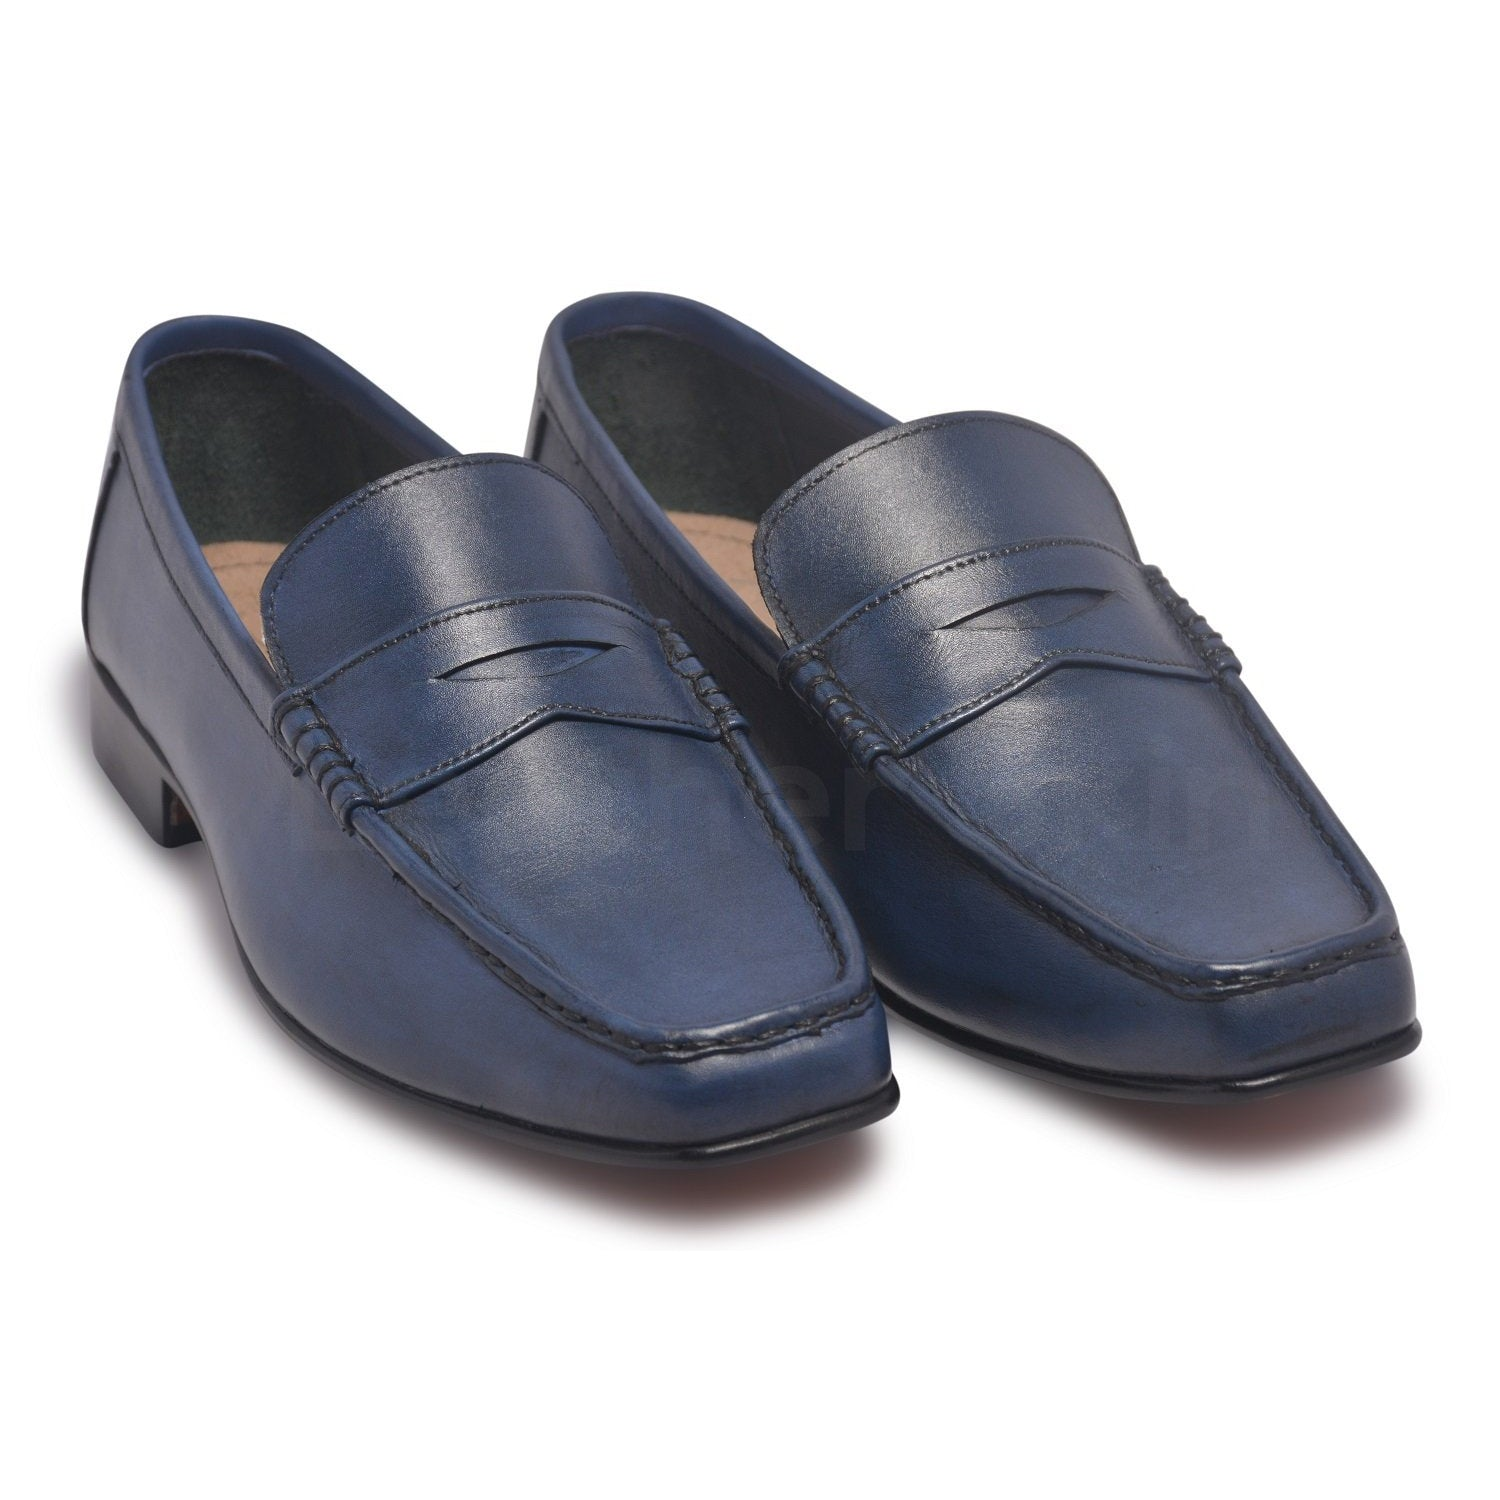 Men Blue Penny Loafer Slip-On Genuine Leather Shoes